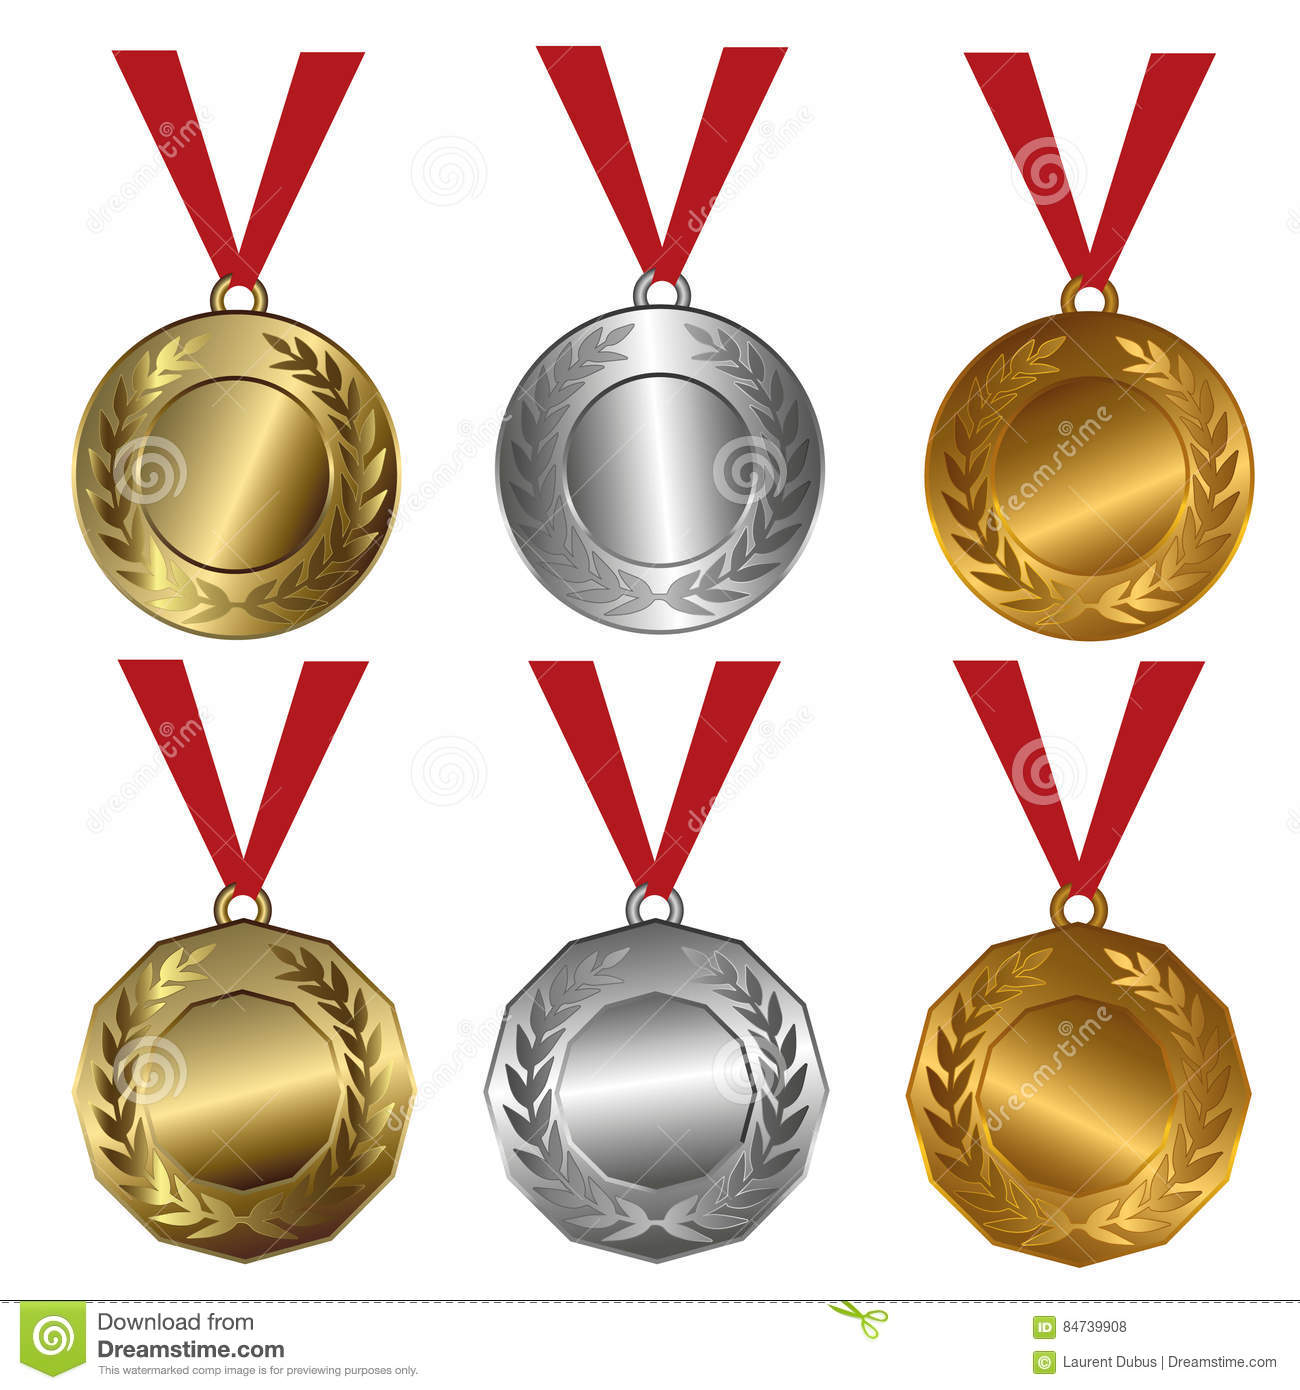 Gold, Silver And Bronze Seals Or Medals Vector ...